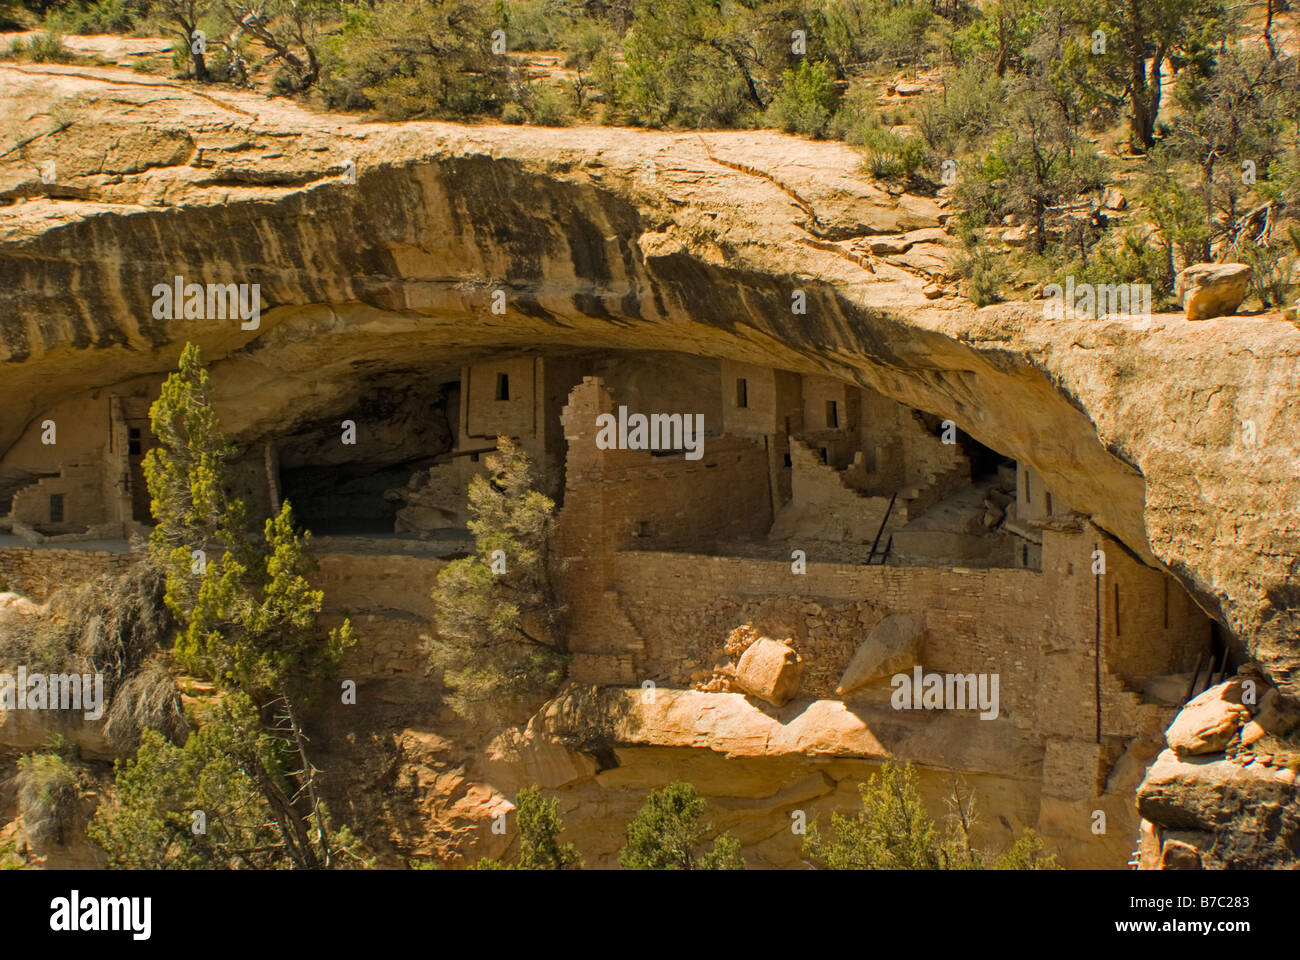 USA Colorado Cortez Mesa Verde National Park Balcony House alcove 12 century ancestral puebloan cliff dwellings - Stock Image